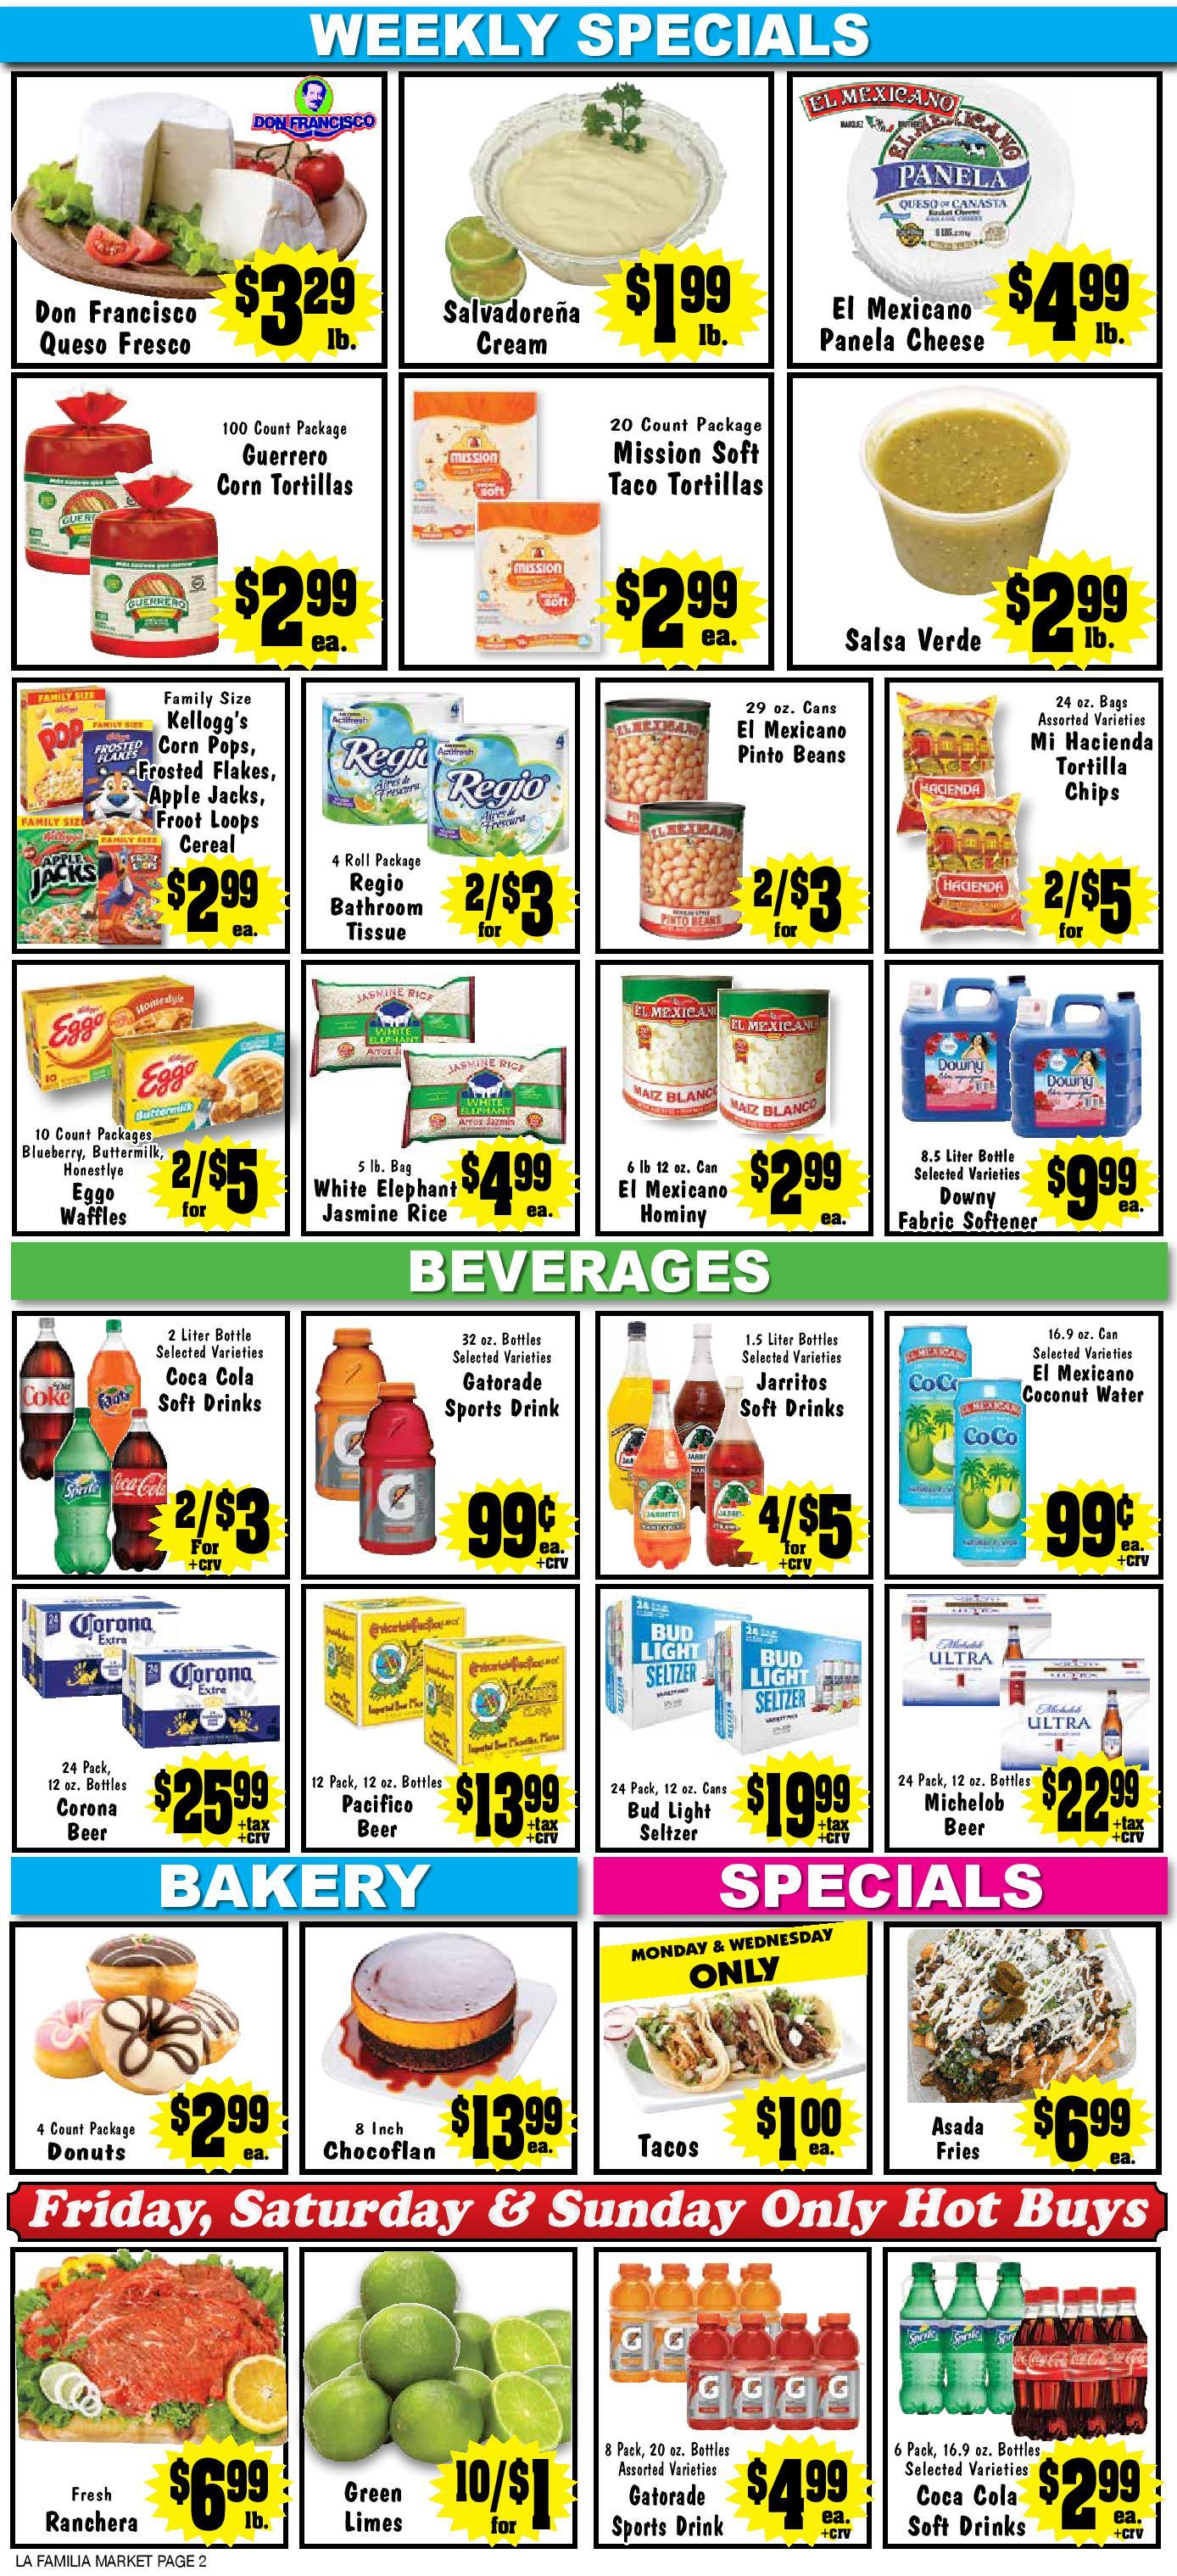 weekly specials page 2